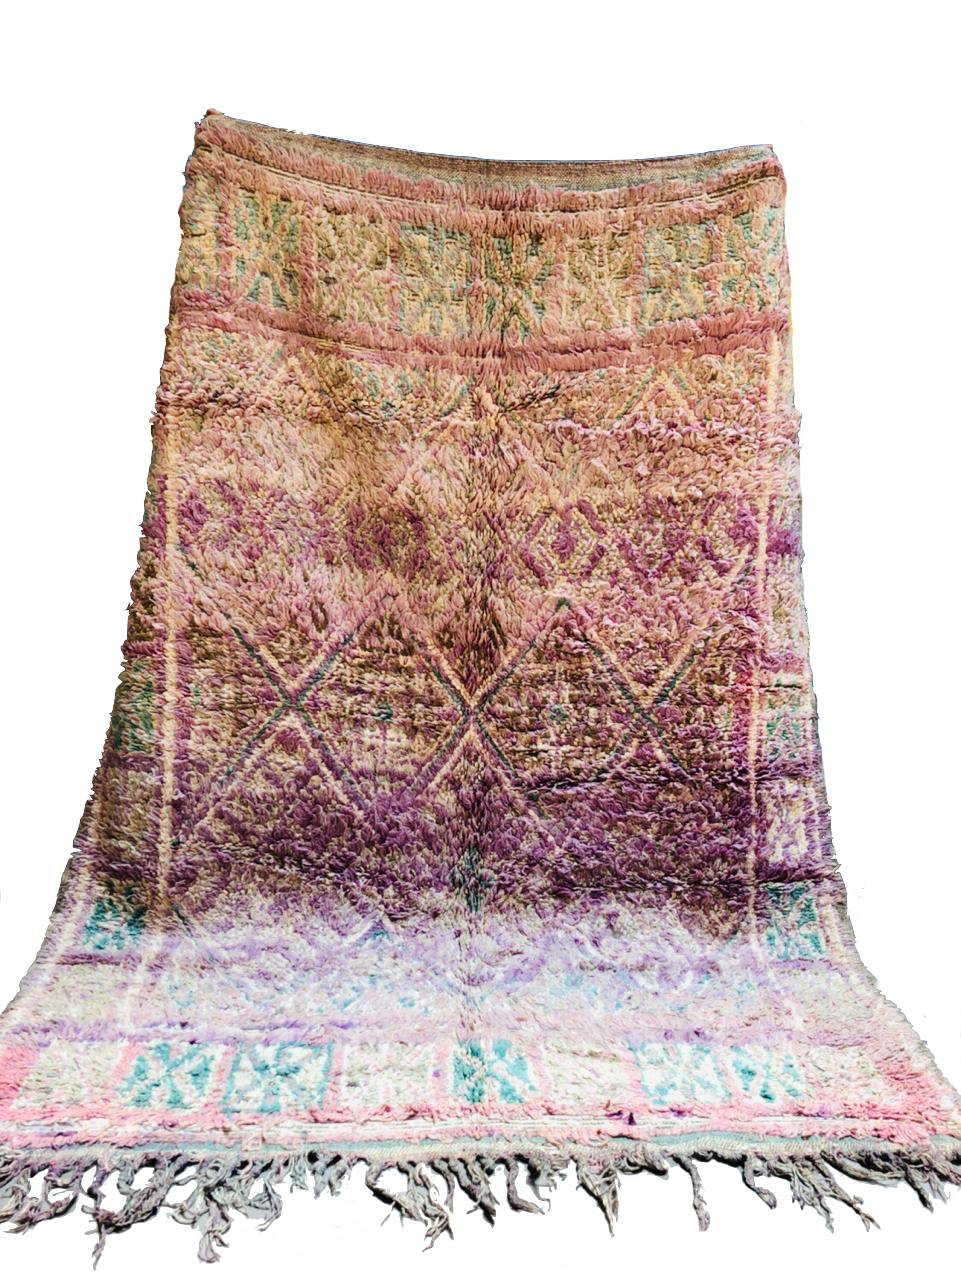 Beni M'Guild Area Rug 6'3